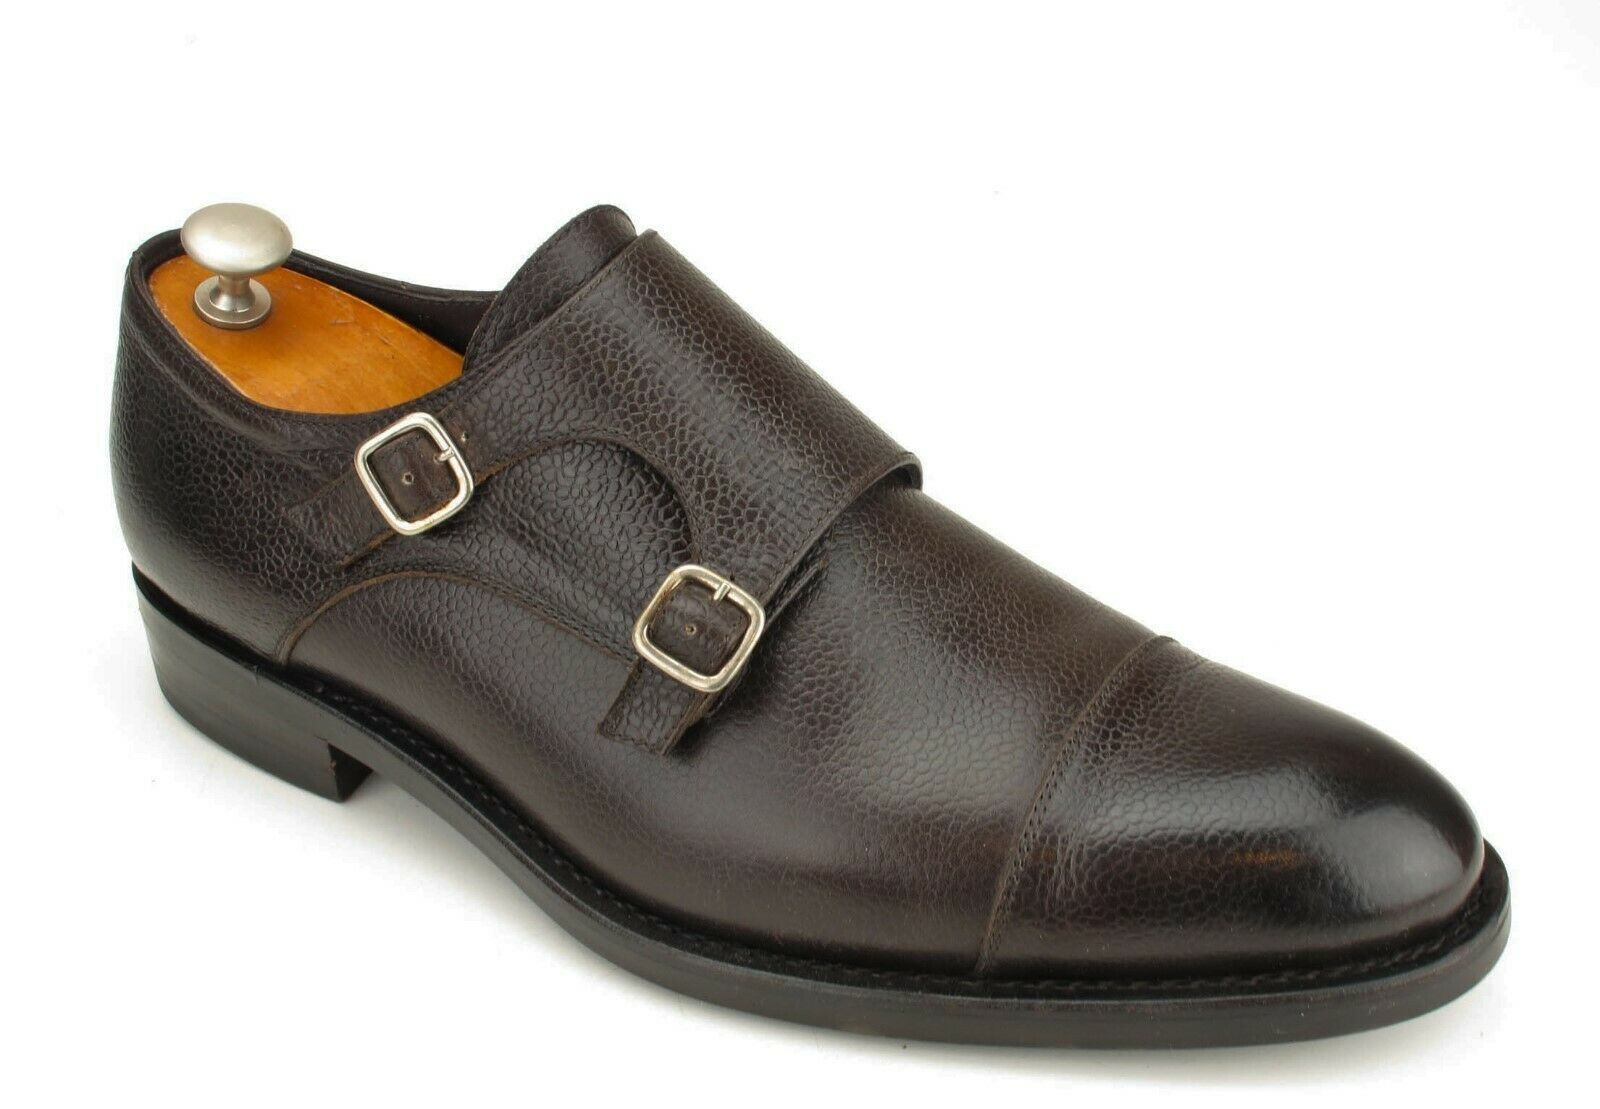 Isaia marrón ternegro Goodyear Welted Doble Monje Hecho a Mano 9.5 UK 10.5 US